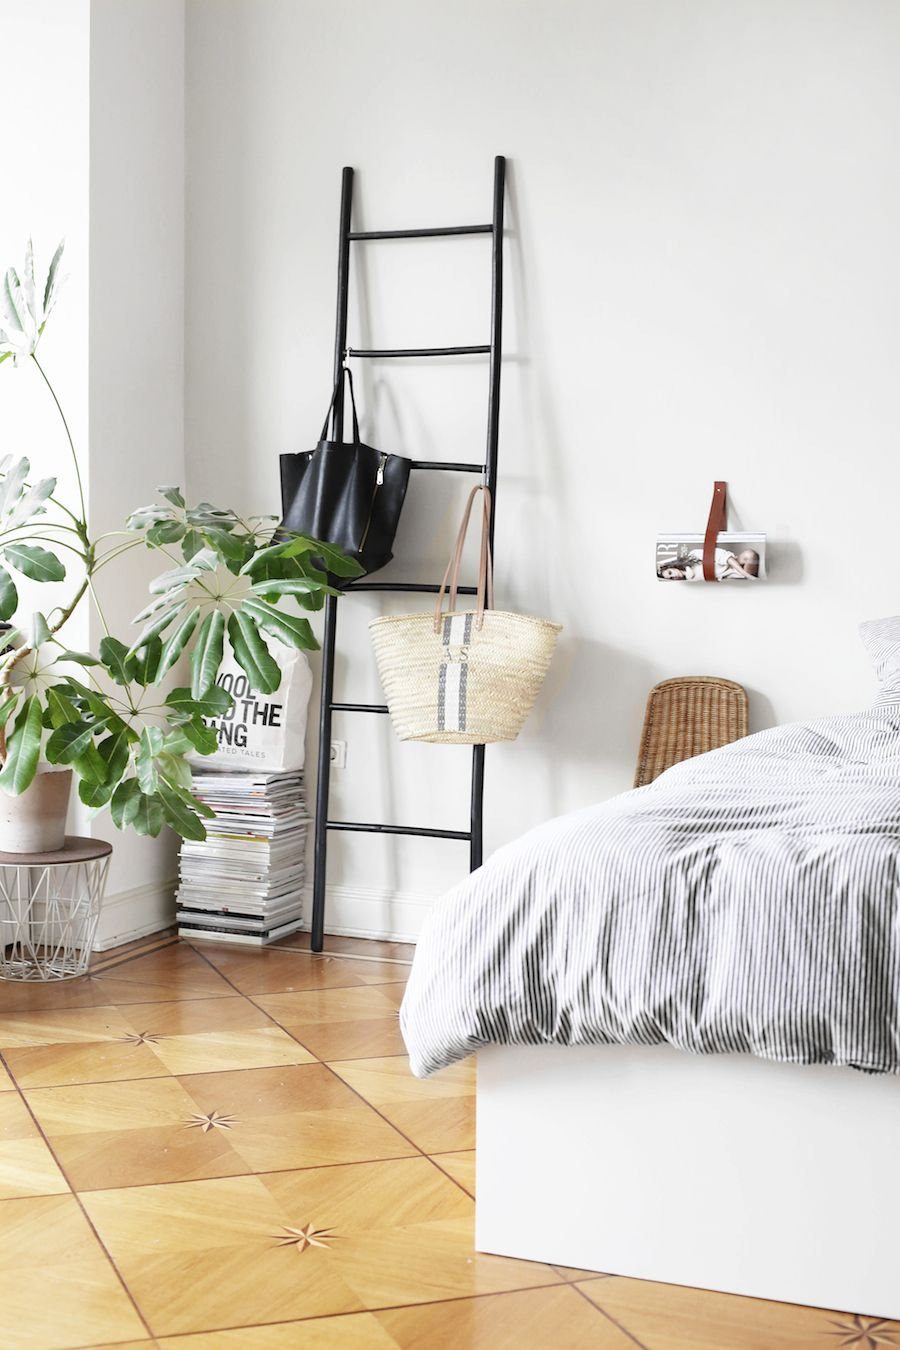 Bedroom Inspiration   What A Beautiful Bedroom Interior Design. This  Styling Is A Mix Of